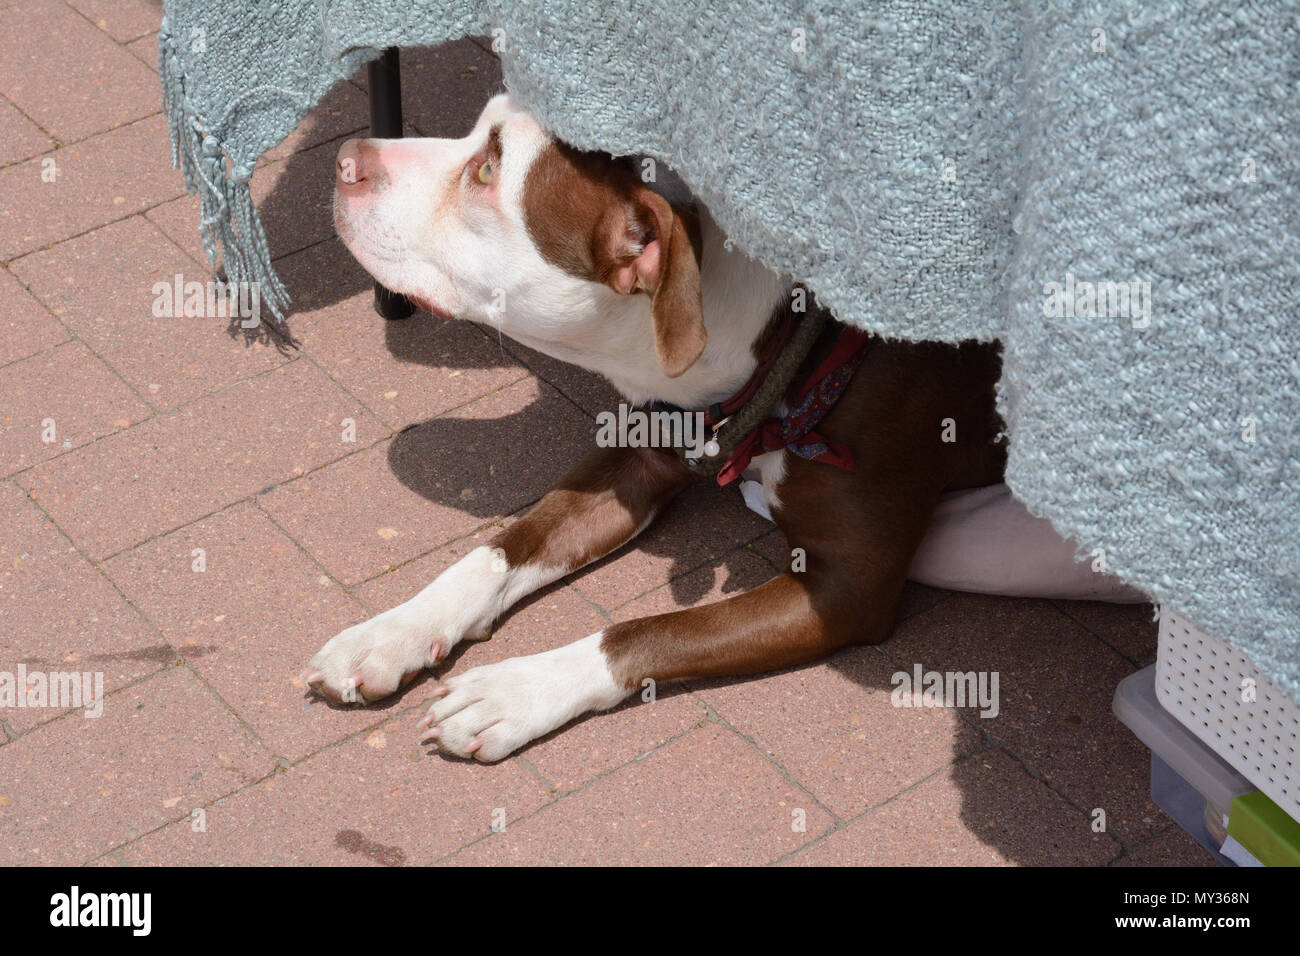 Dog staying cool from summer heat by sitting under table and in shade while peering out at the world - Stock Image